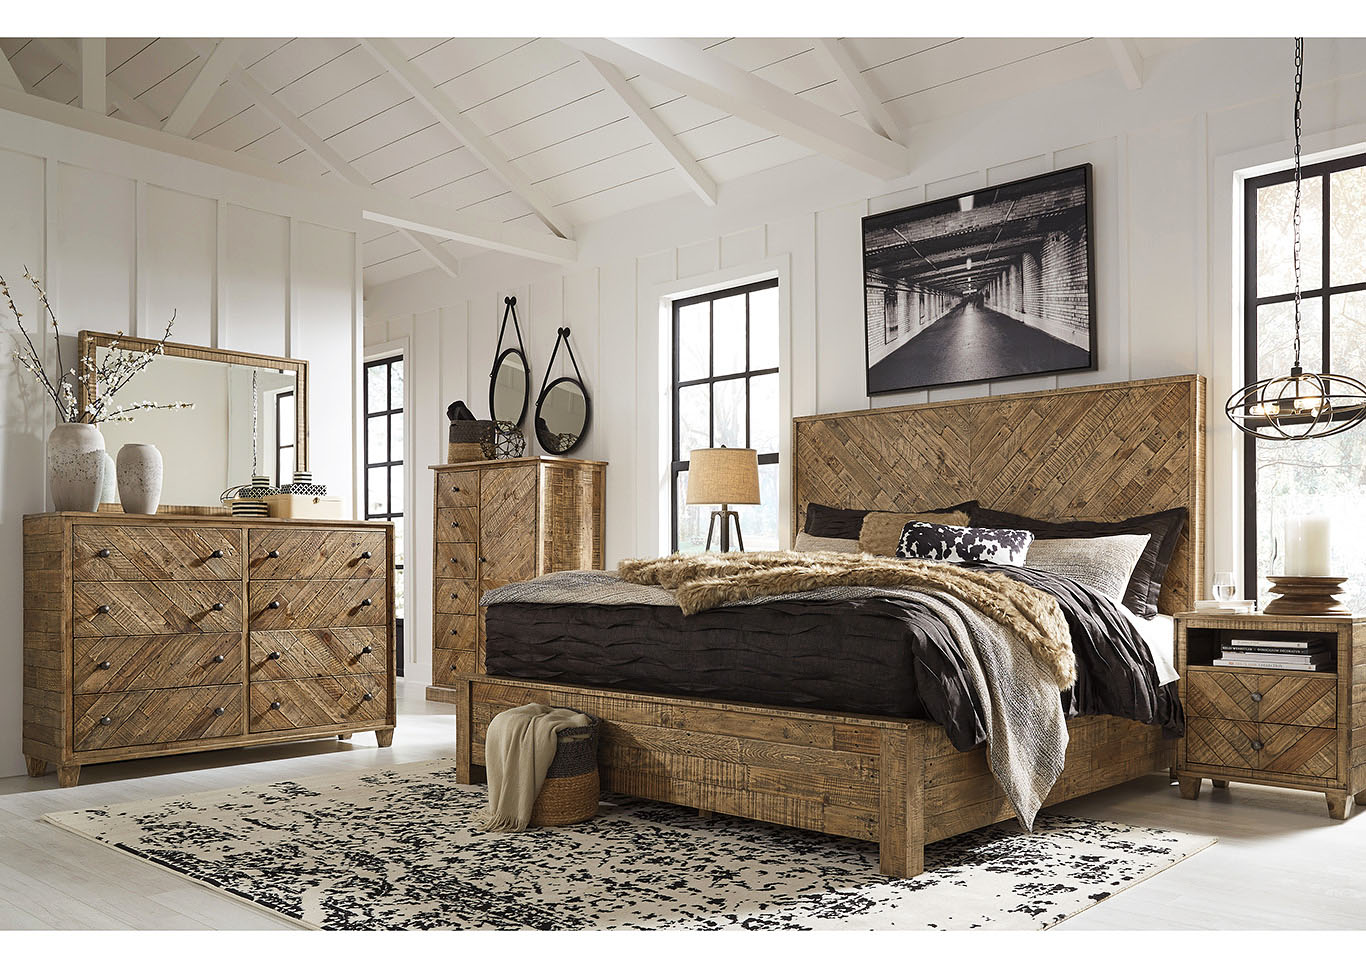 Grindleburg Light Brown California King Platform Bed and Dresser w/Mirror,Signature Design By Ashley